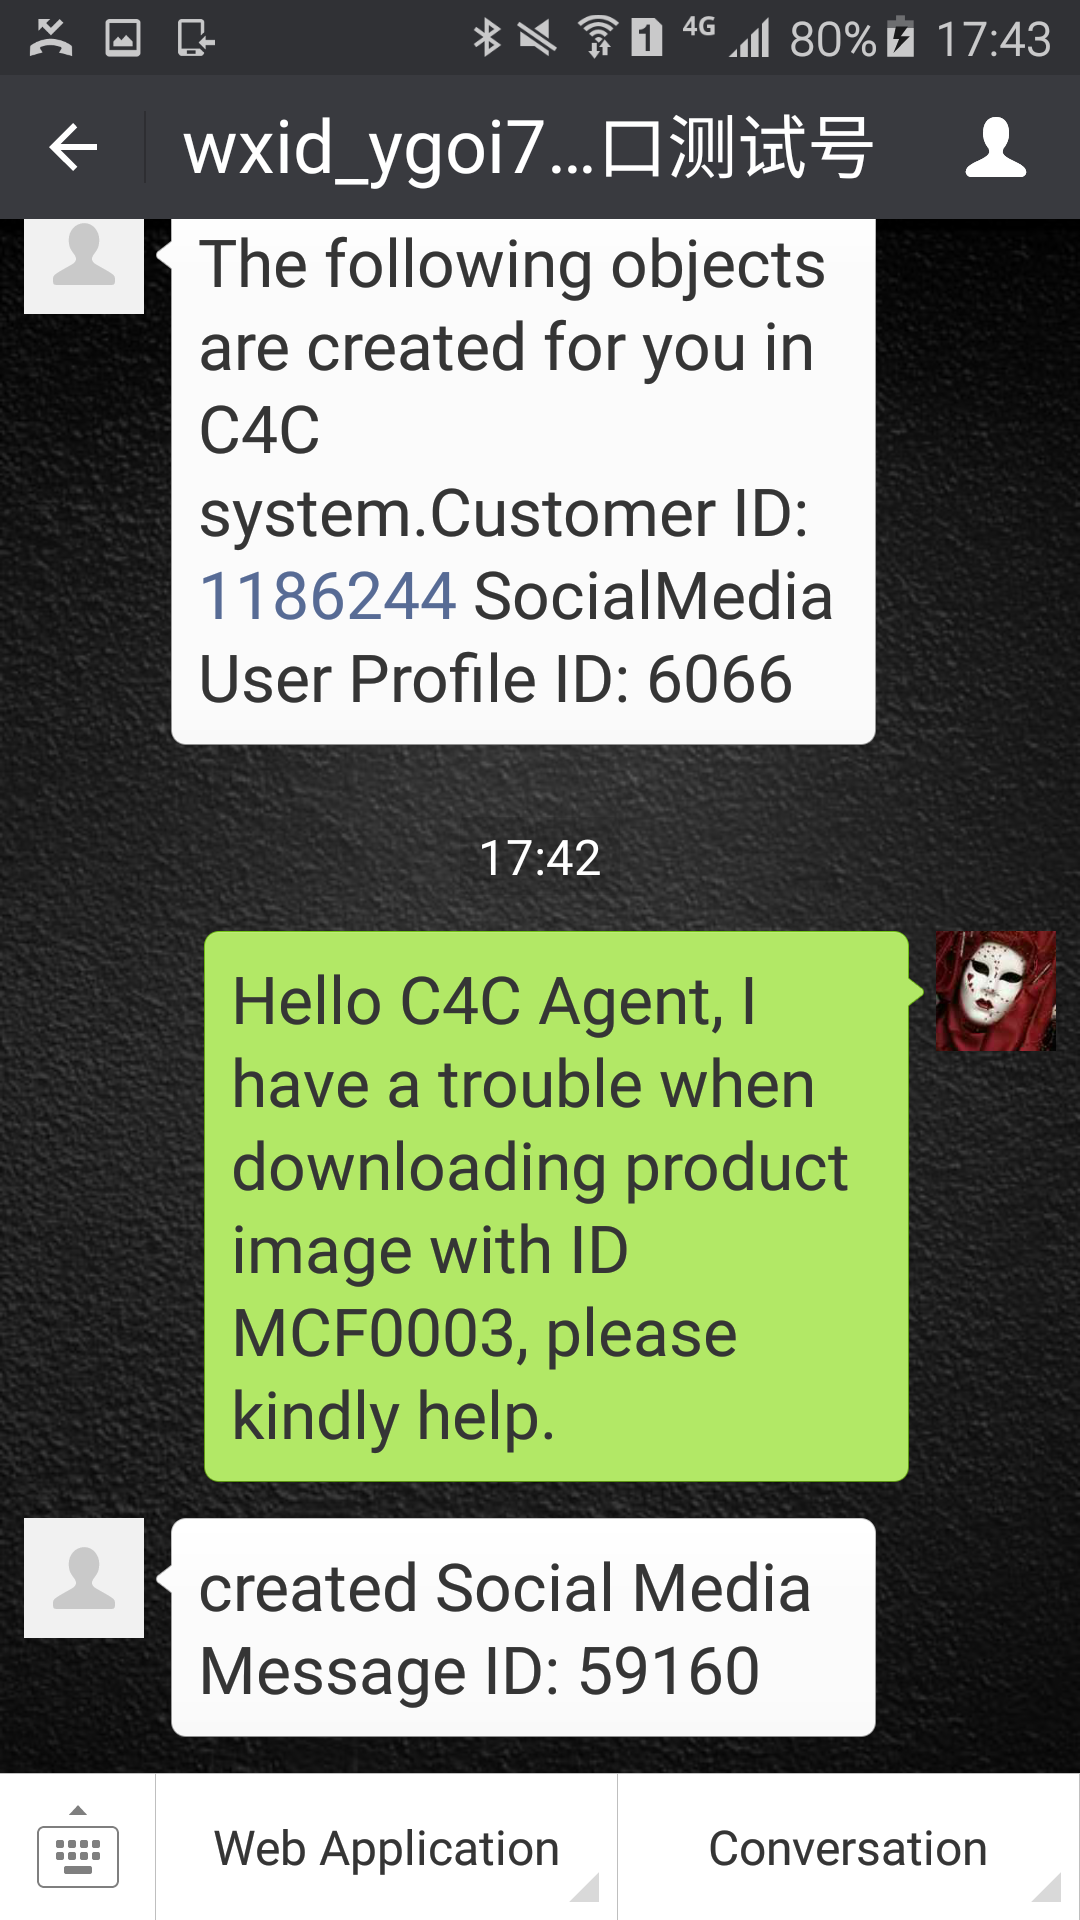 Wechat development series 9 – Create C4C Social Media Message and